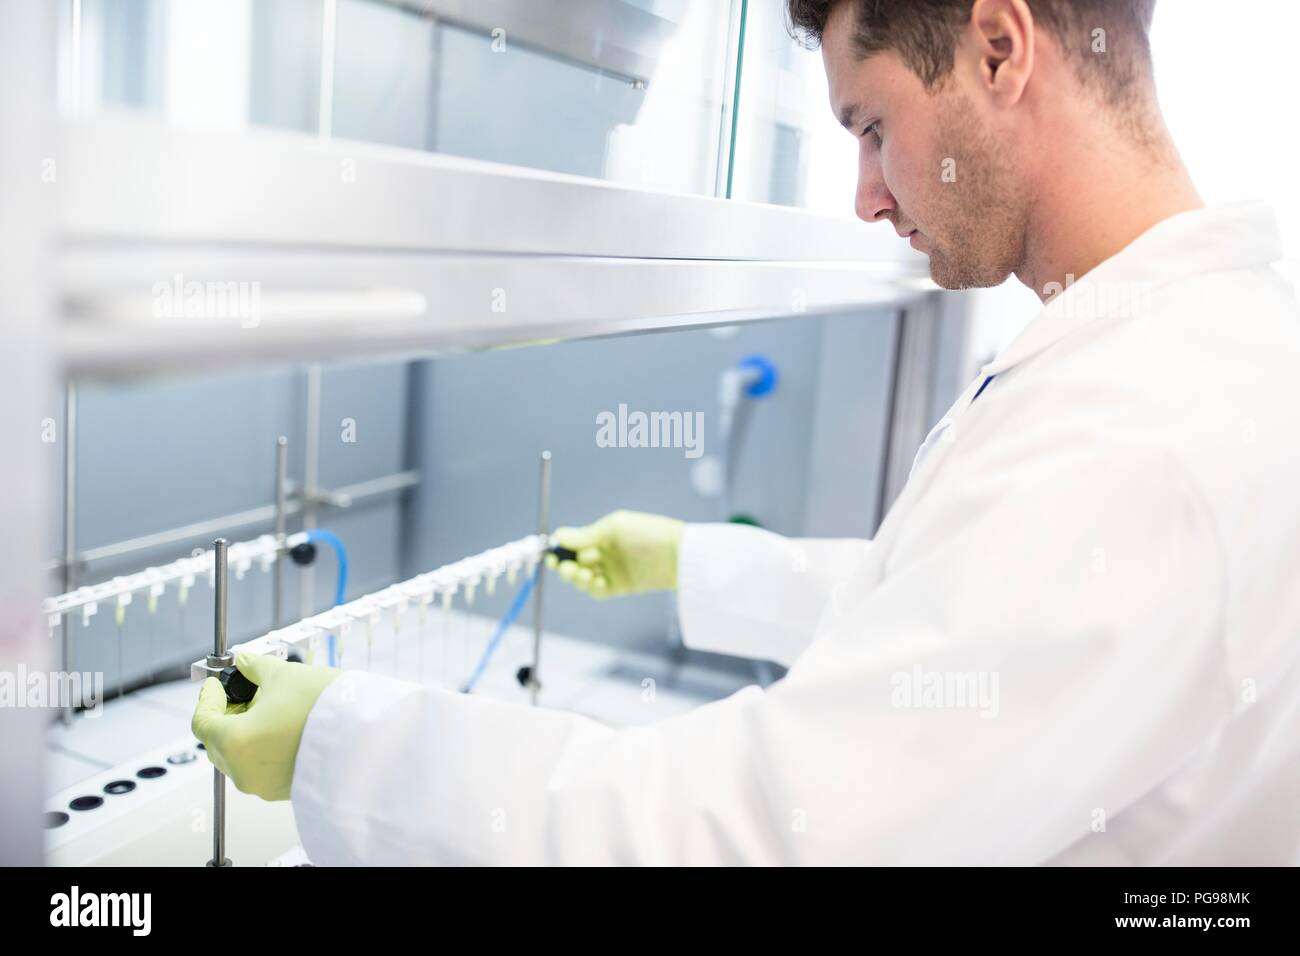 Solid phase extraction (SPE) columns being placed on a stand. SPE is used to separate biological compounds from a mixture for further analysis. - Stock Image